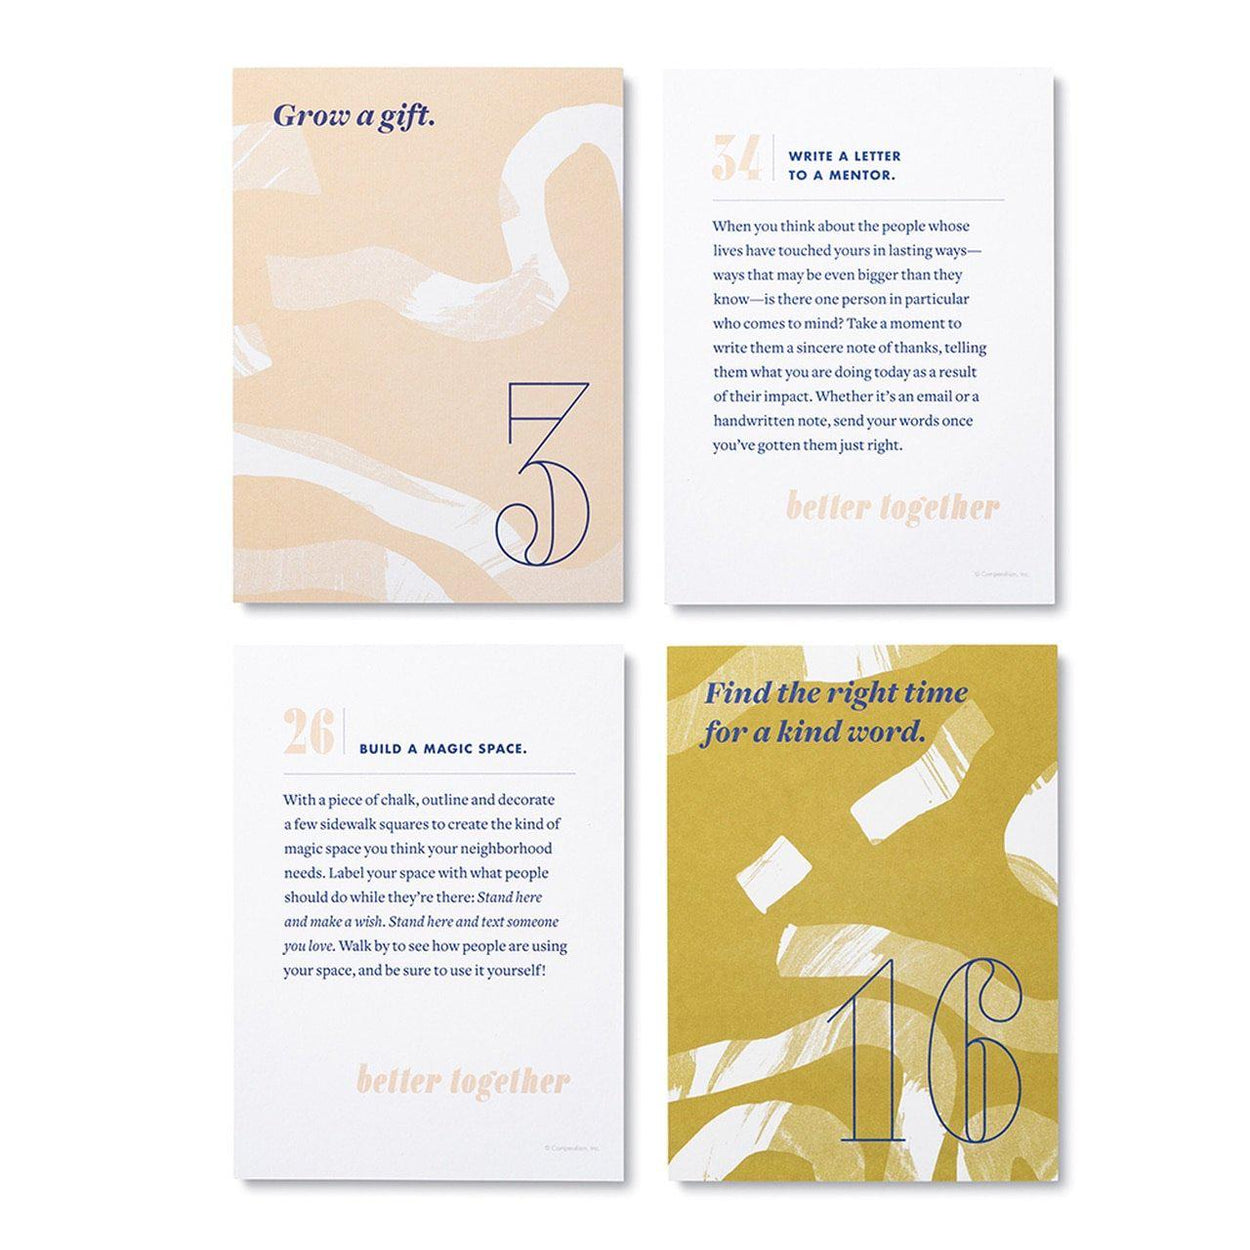 Better Together Card Set-Reflection Cards-Compendium-Crying Out Loud